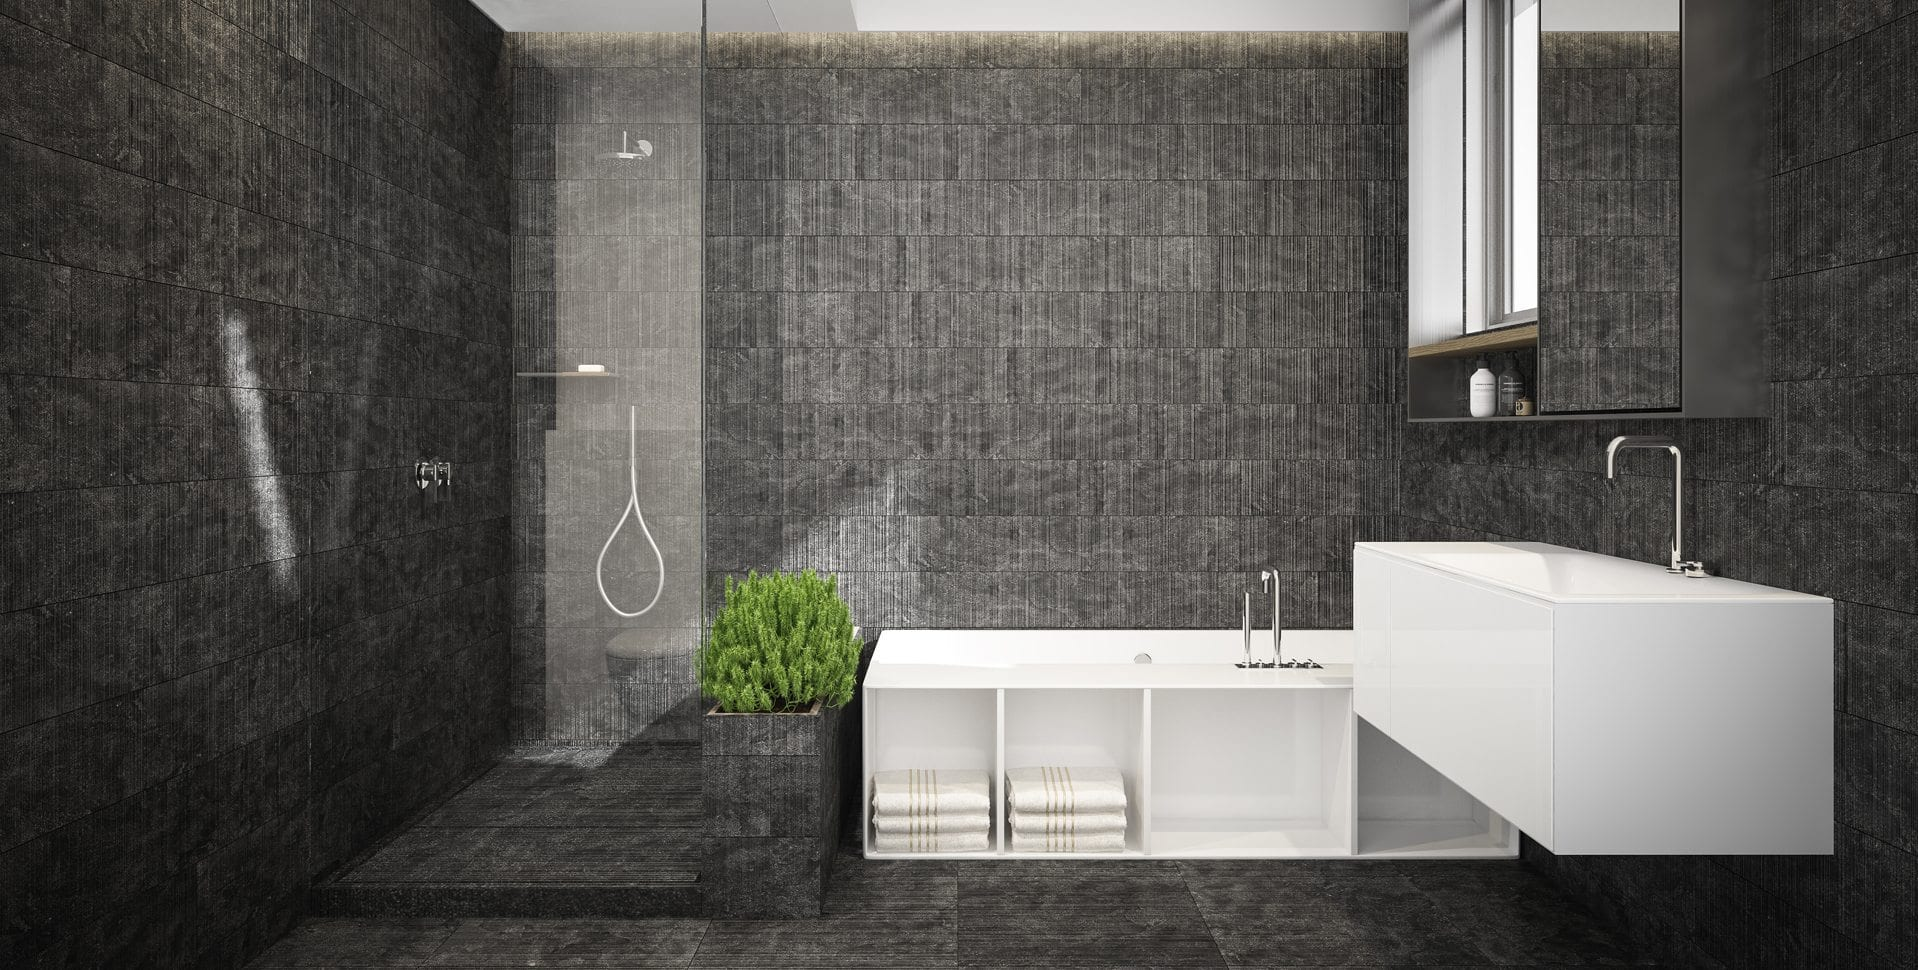 Maayan-Golan_Architectural-Visualization_ duplex-interior-visualization_bathroom_design-hazak-studio_02